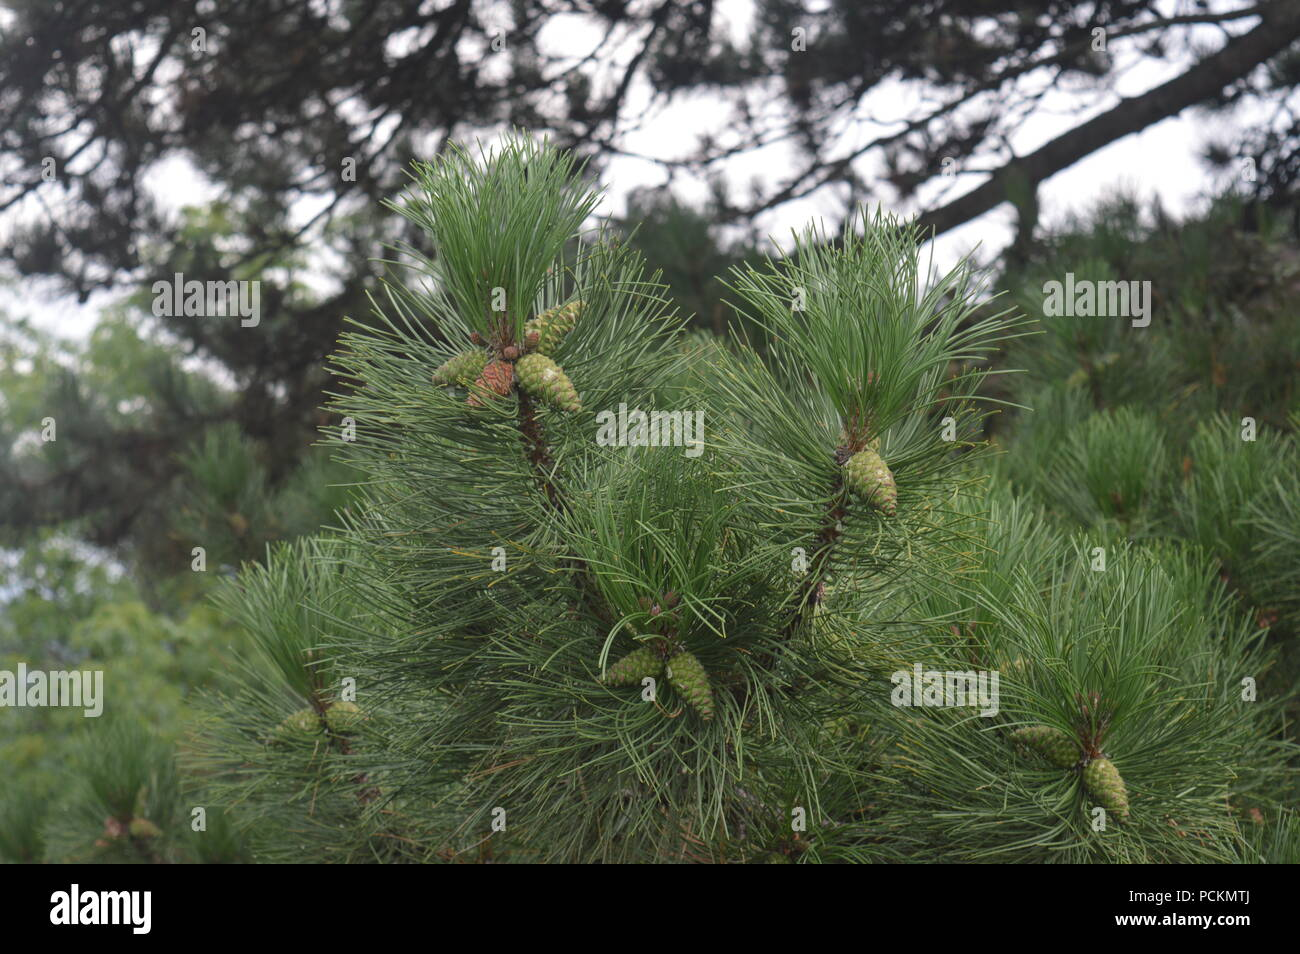 Pinecones - Stock Image